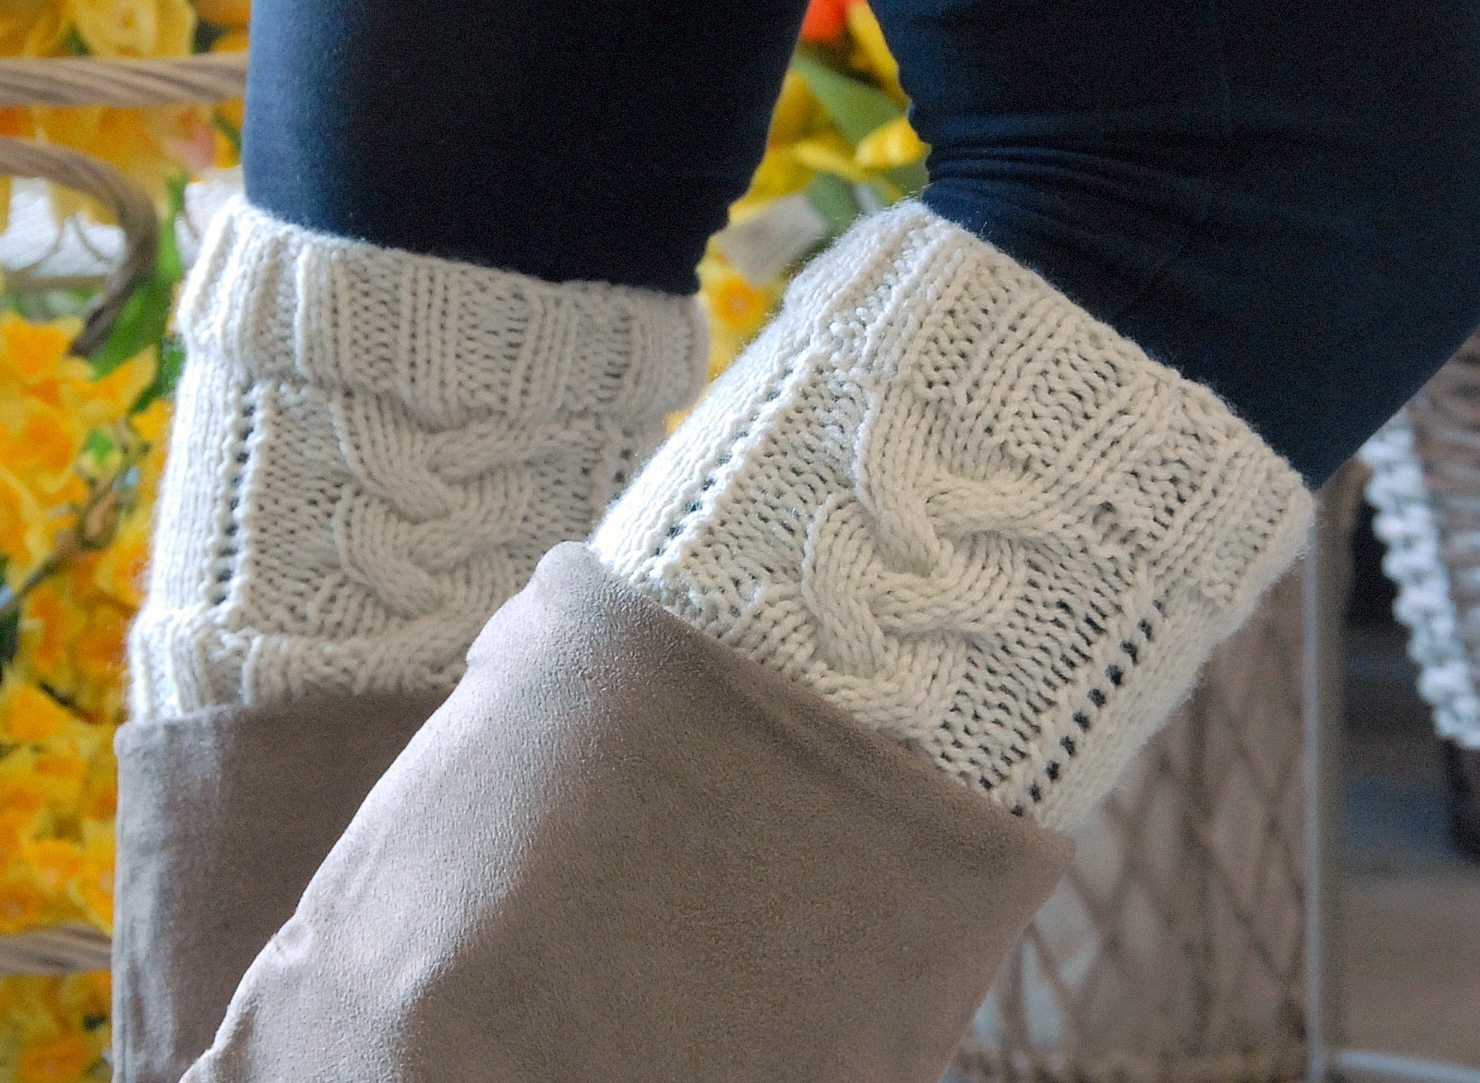 Free Knitting Pattern For Boot Cuffs : Ben Franklin Crafts and Frame Shop, Monroe, WA: Knitted Boot Cuffs FREE Pattern